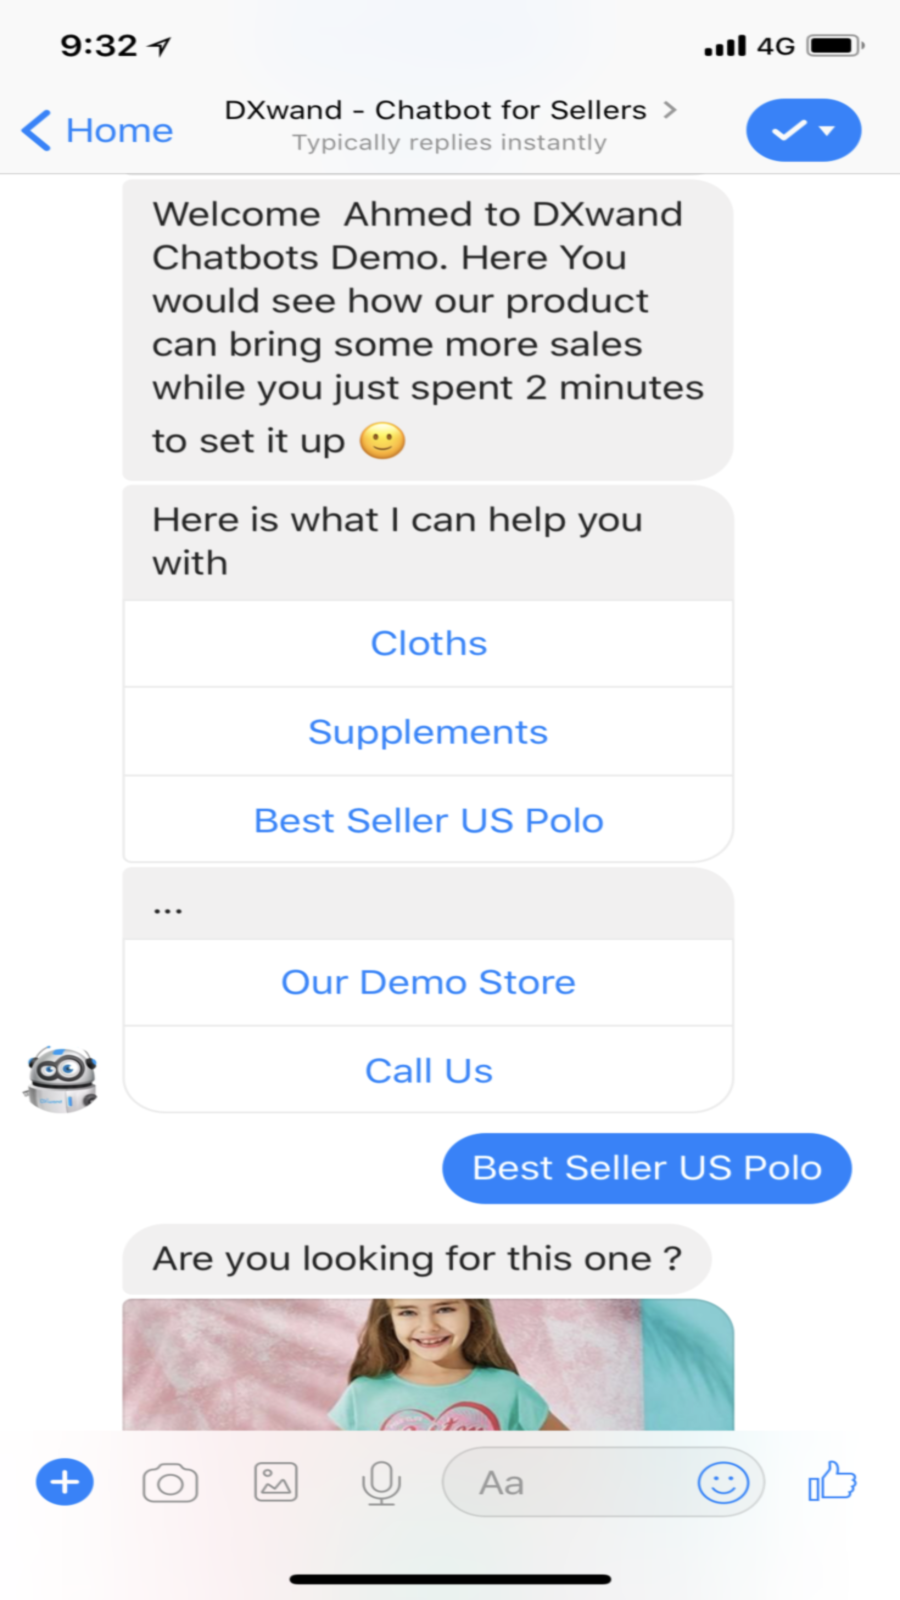 Chatbot custom welcome message and menu